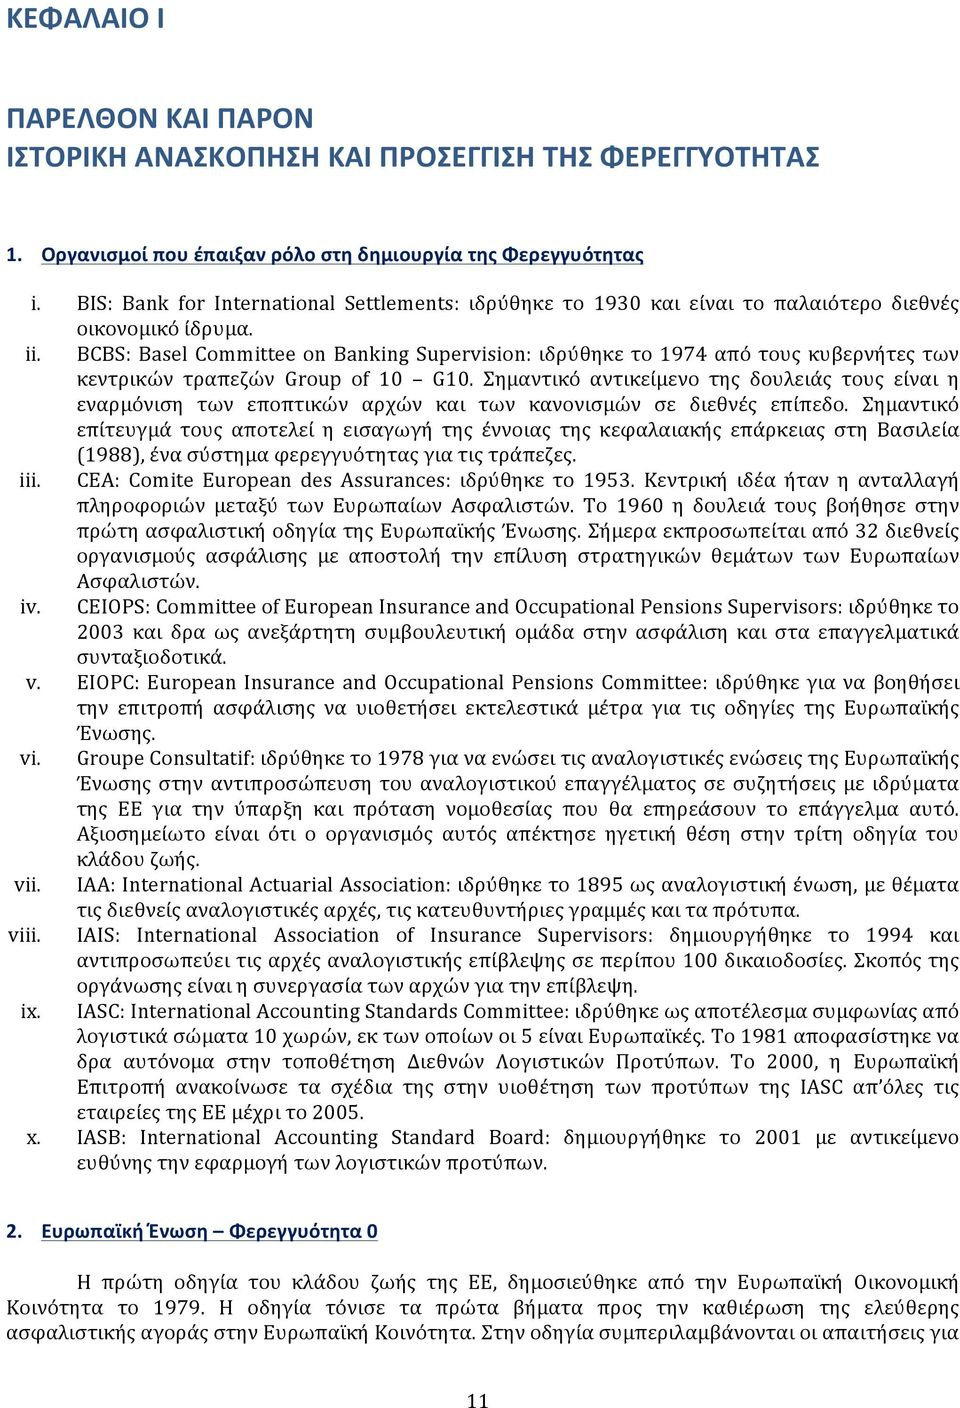 BCBS: Basel Committee on Banking Supervision: ιδρύθηκε το 1974 από τους κυβερνήτες των κεντρικών τραπεζών Group of 10 G10.